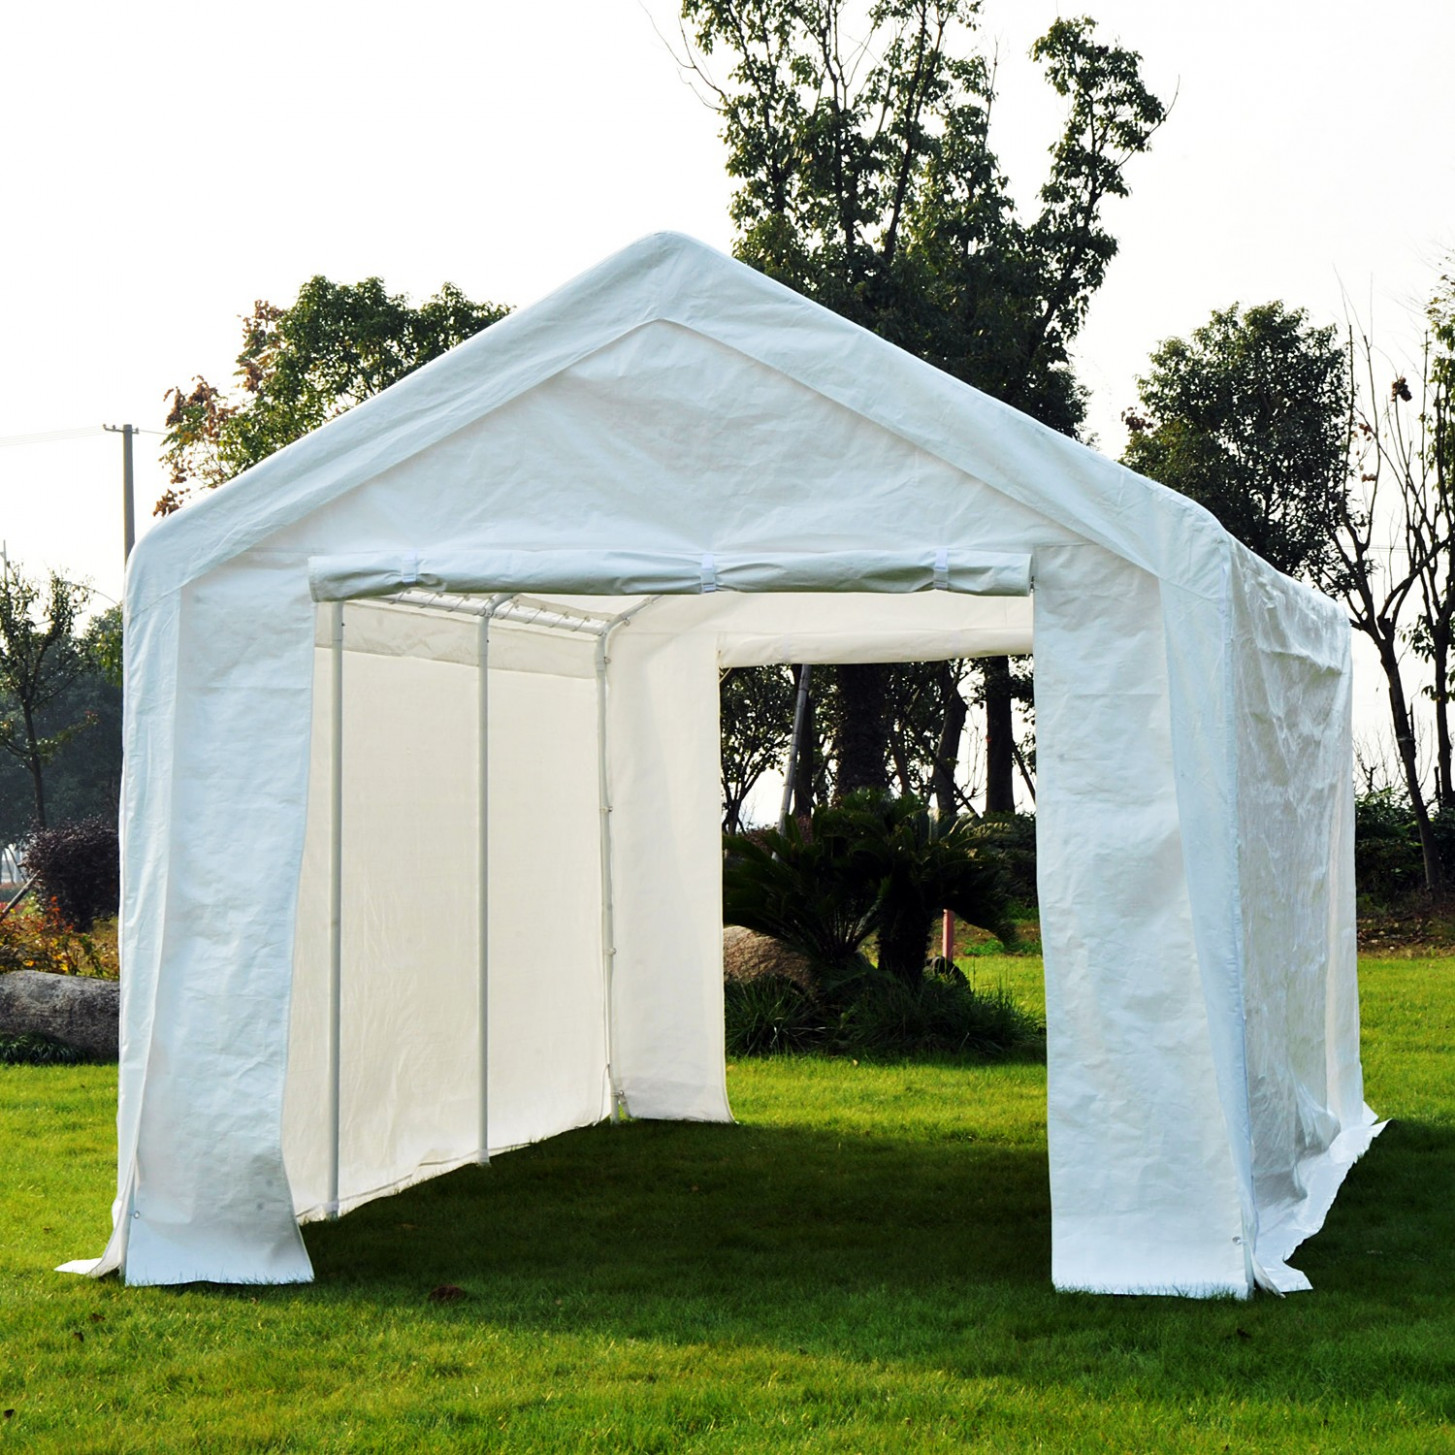 Outsunny 10'x20' 2 In 1 Carport Gazebo Canopy With ..